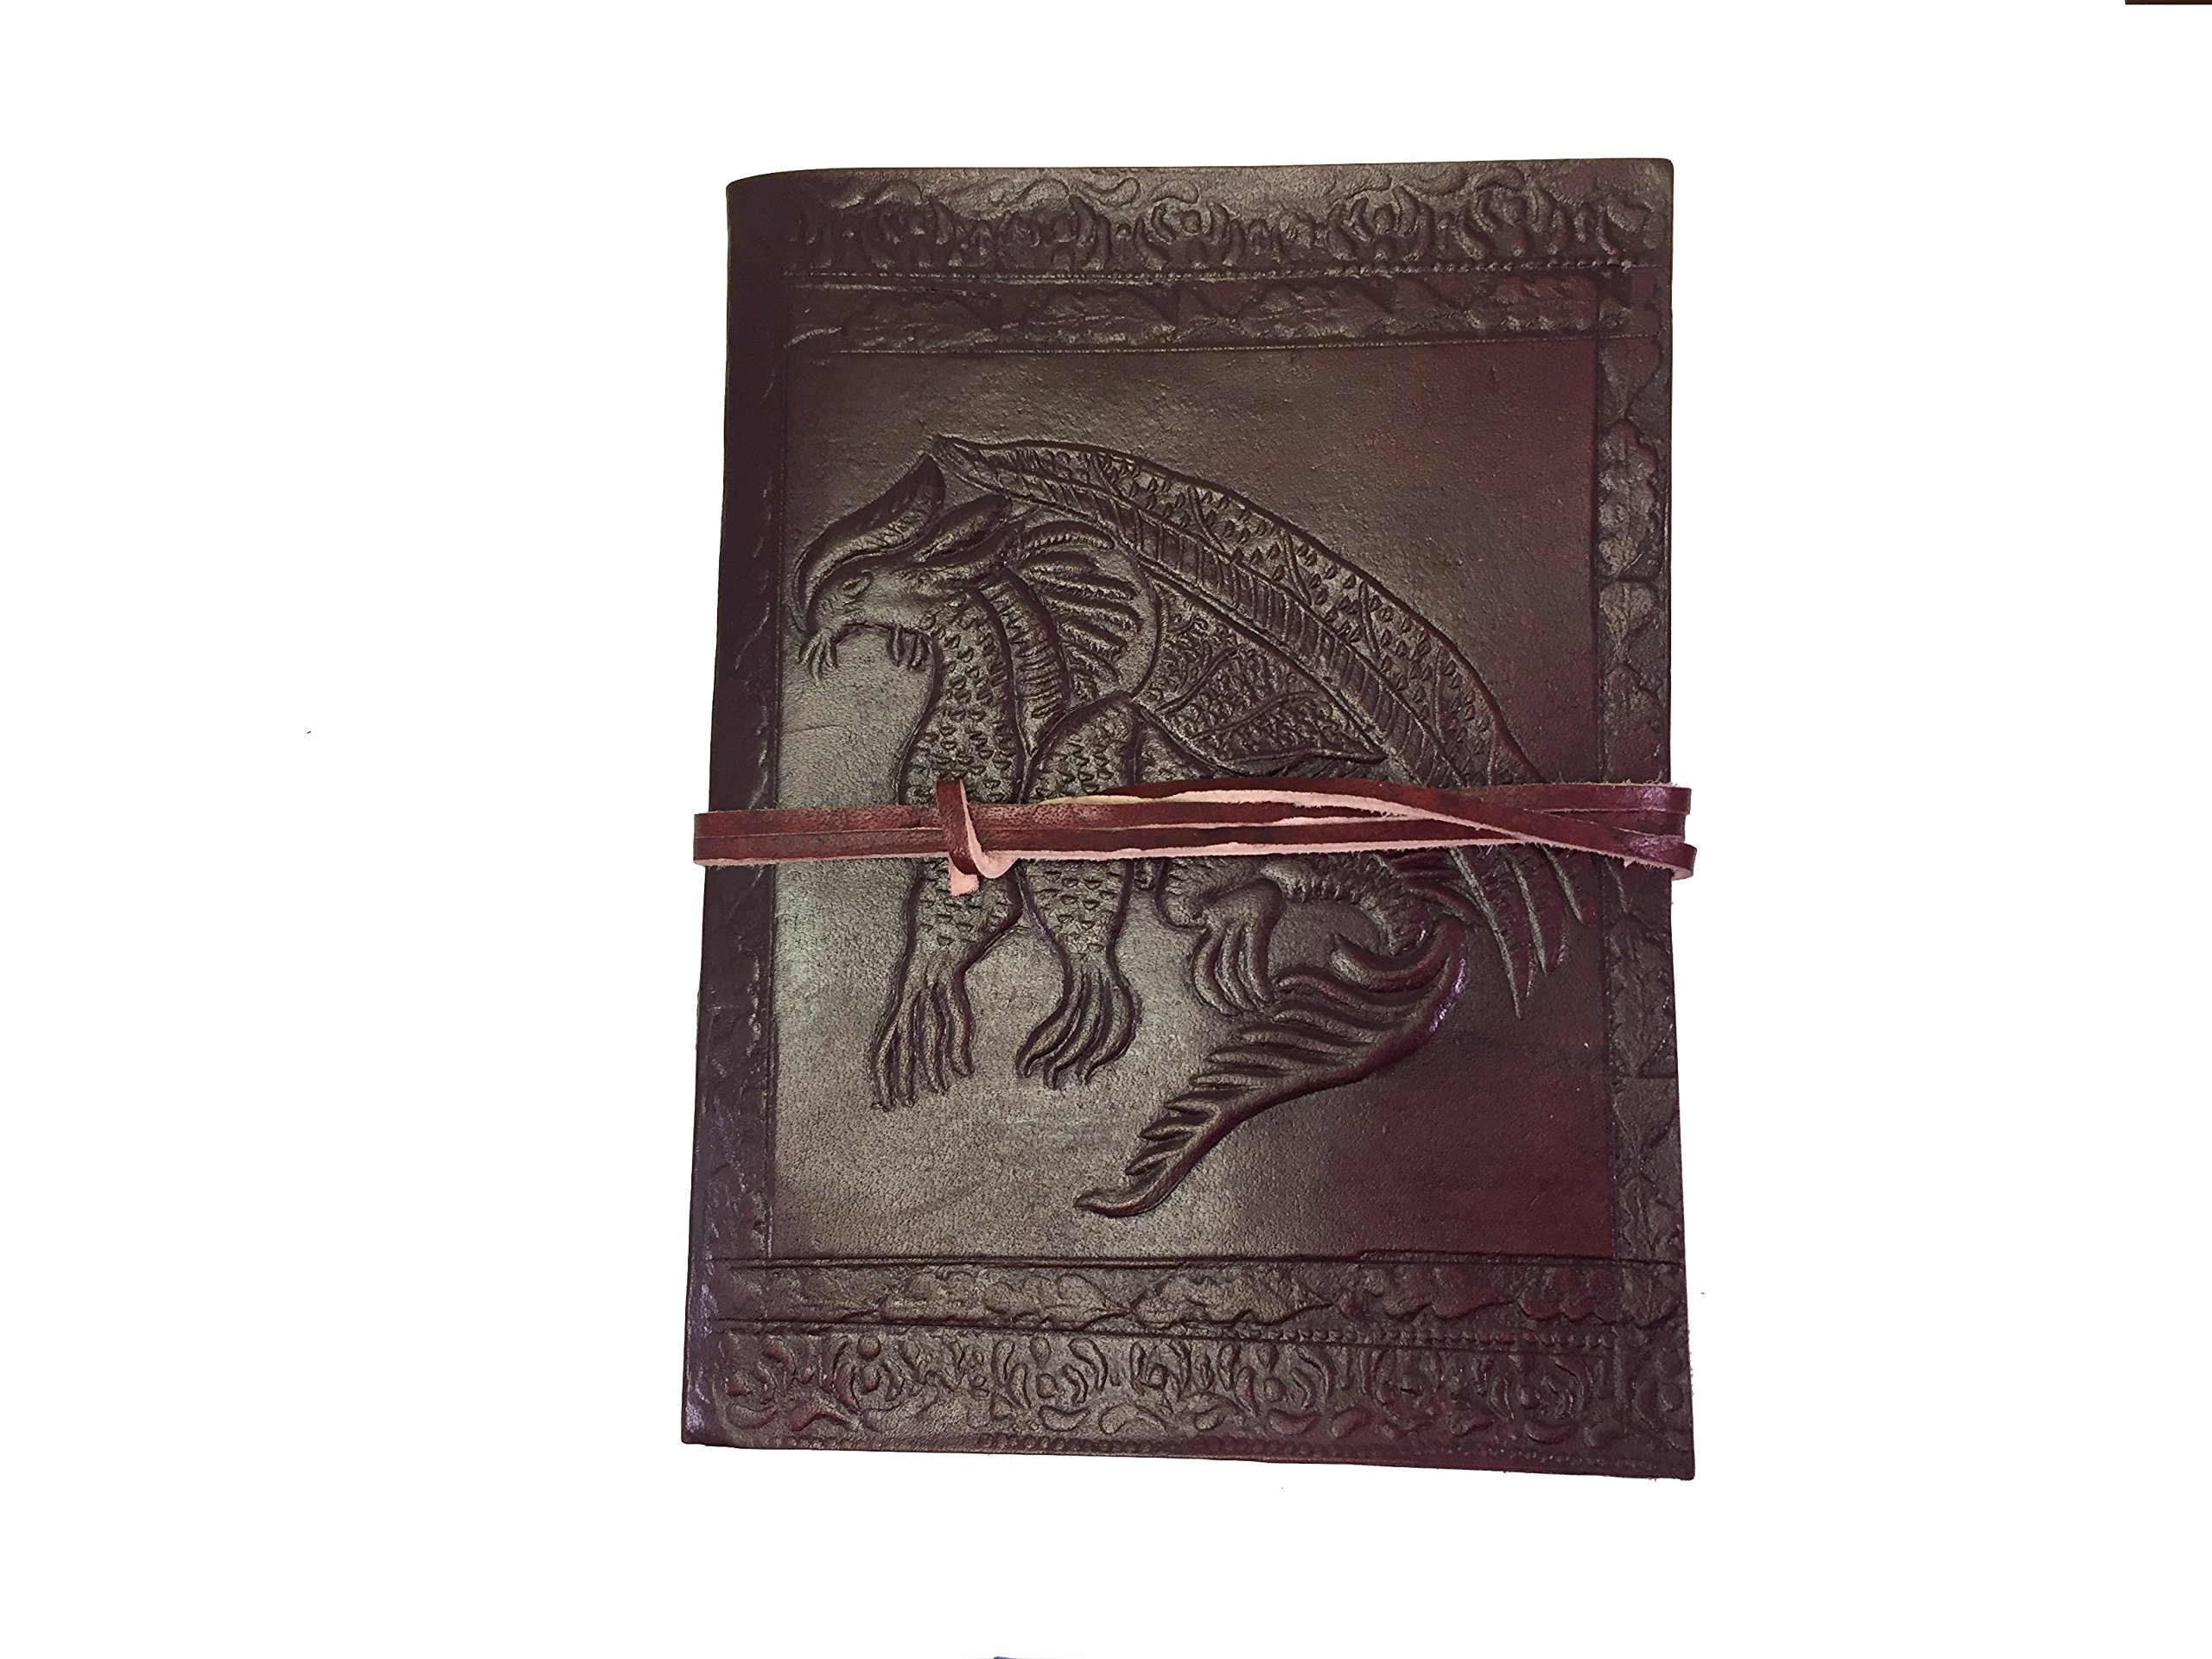 Genuine Leather Journal Dragon Embossed – Handcrafted Real Leather Bound Book - Handmade Paper – Vintage Style For Creative Writing, Sketching, Dream Diary or Travel Journaling – Dragon Gift Idea 5x7''